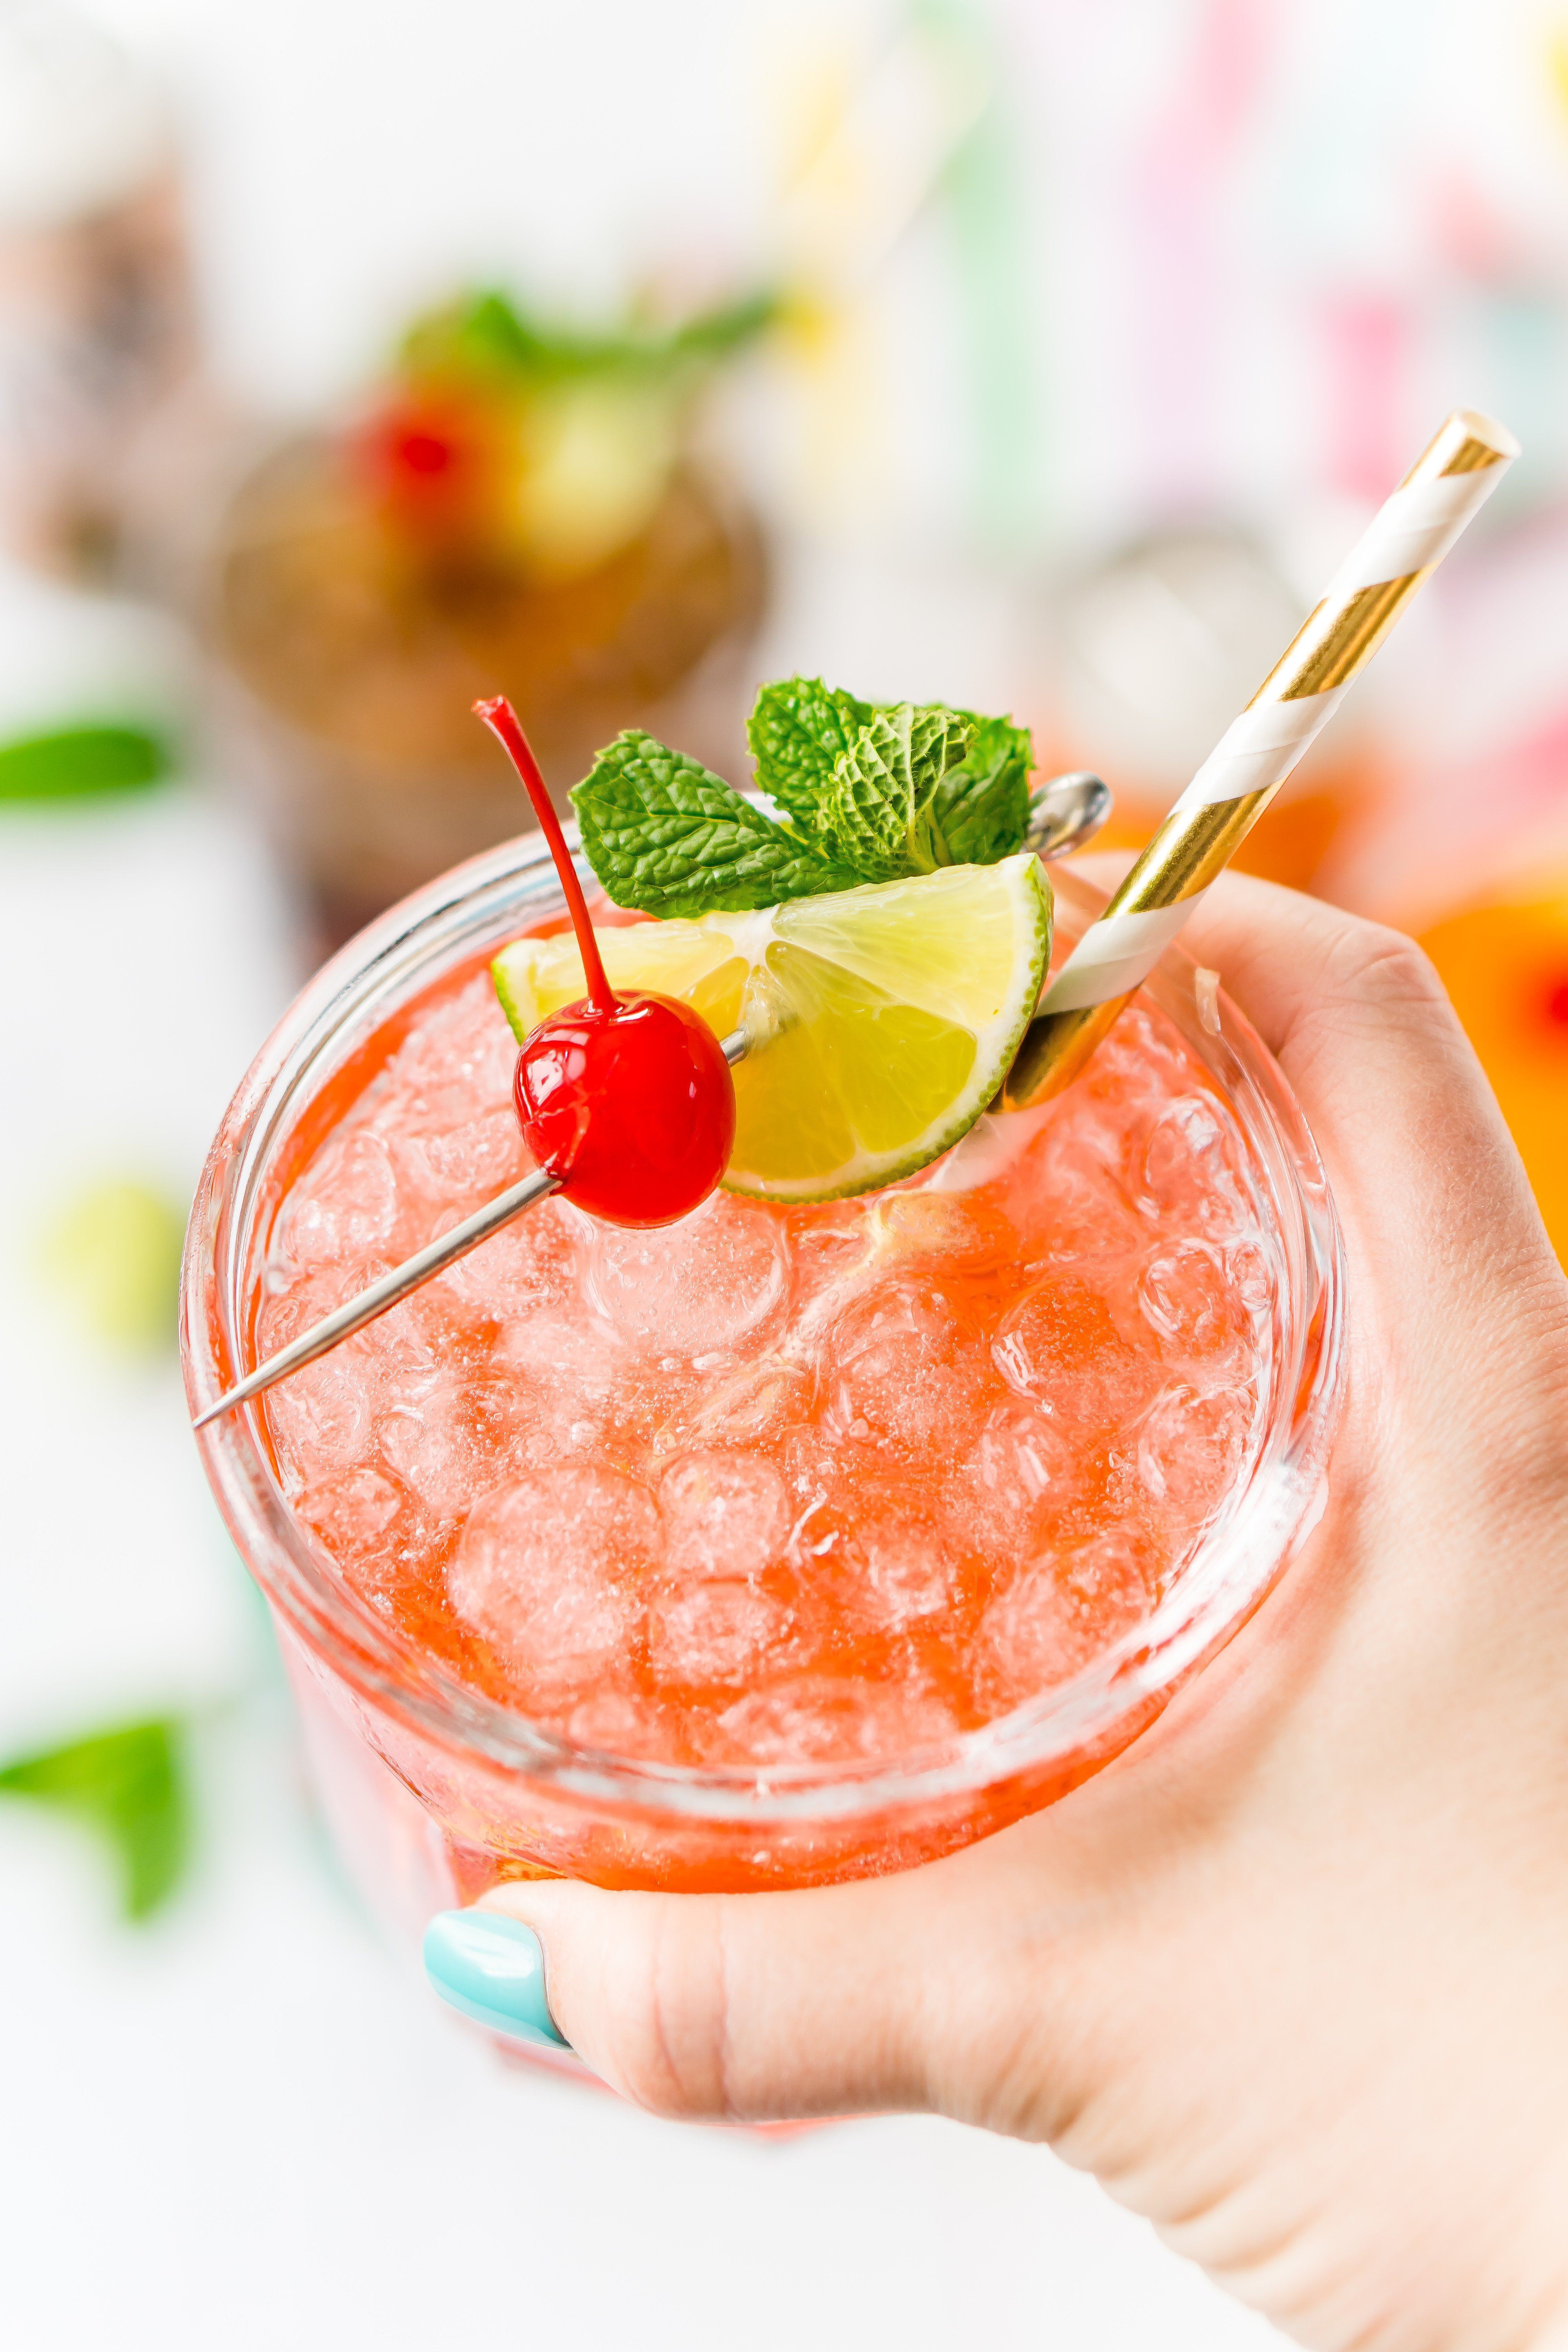 Woman's hand holding up a drink garnished with cherry, mint, and lime.